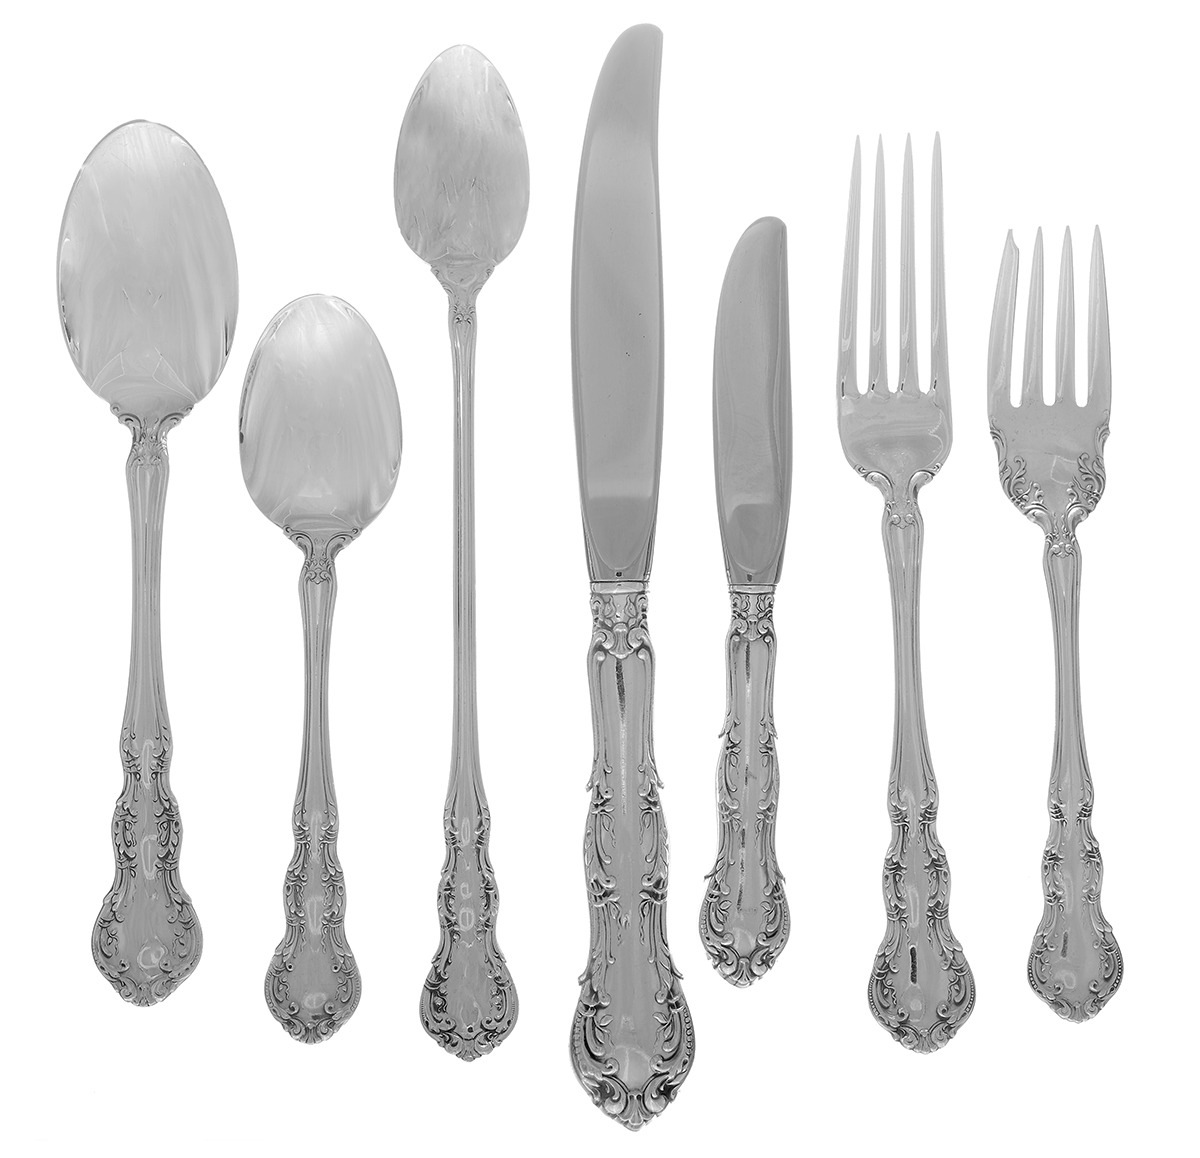 1888 Shiebler Rococo Sterling Silver Teaspoons w// Monogram One 1 5 Available